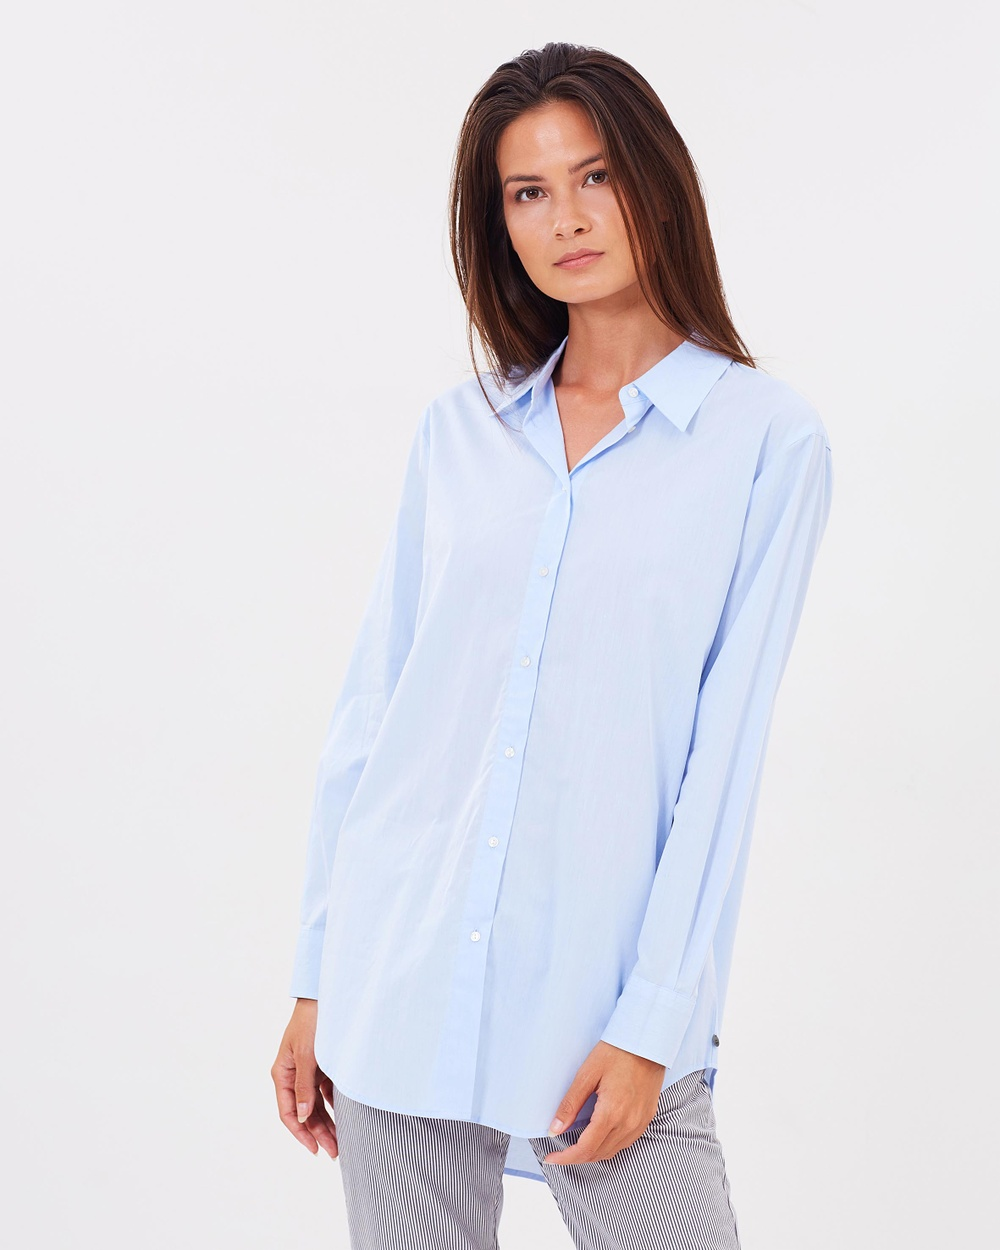 Maison Scotch Button Up Boyfriend Shirt Tops Sky Blue Button-Up Boyfriend Shirt